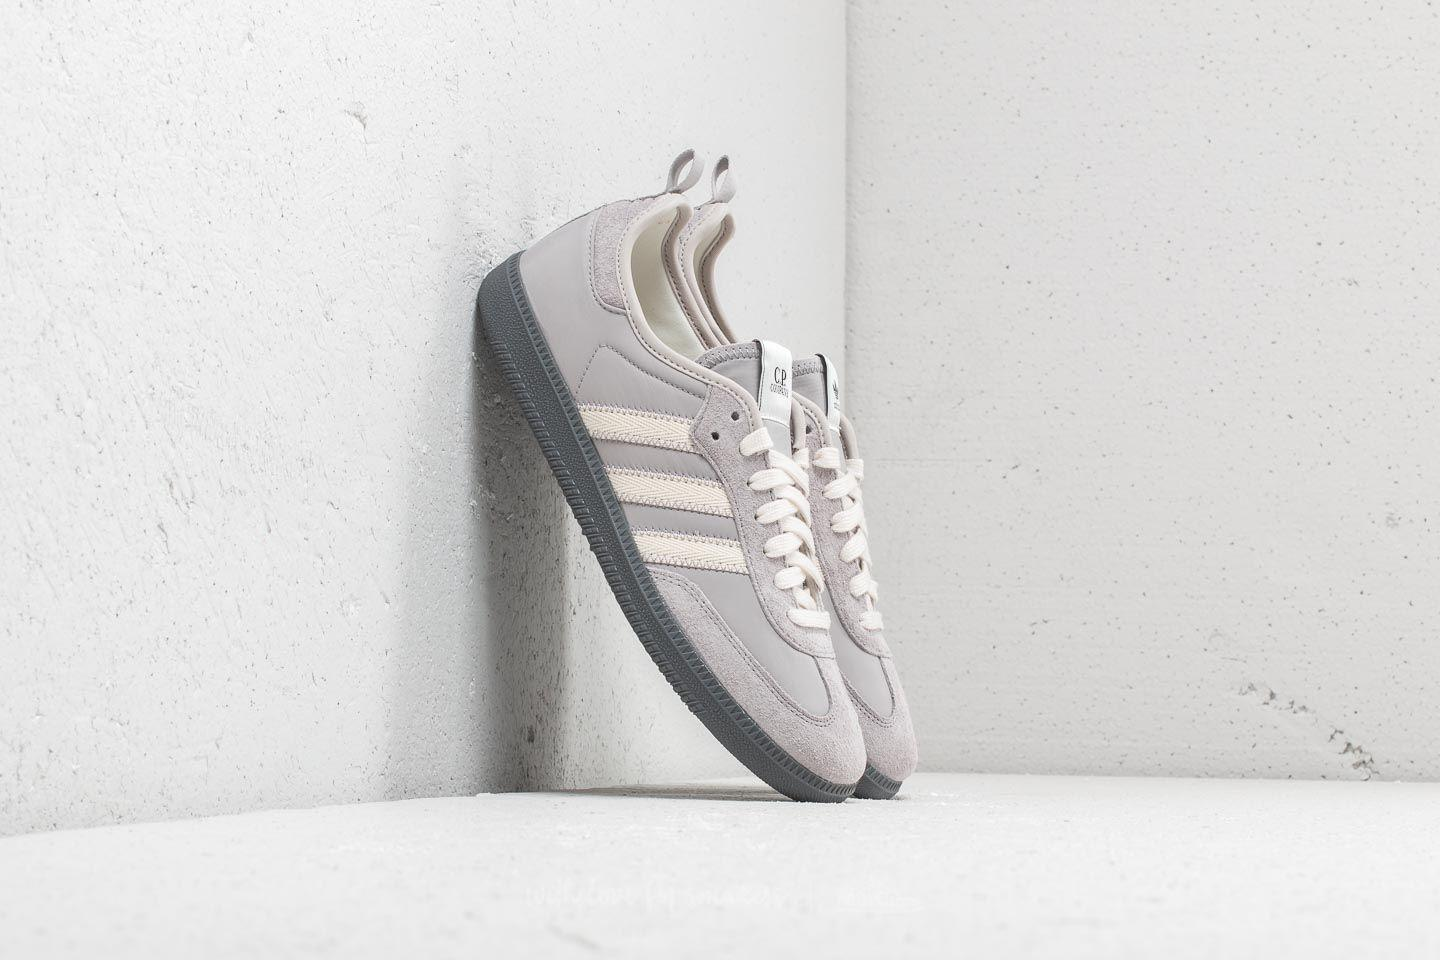 outlet store 5888d 86399 Lyst - adidas Originals Adidas X C.p. Company Samba Clear Gr